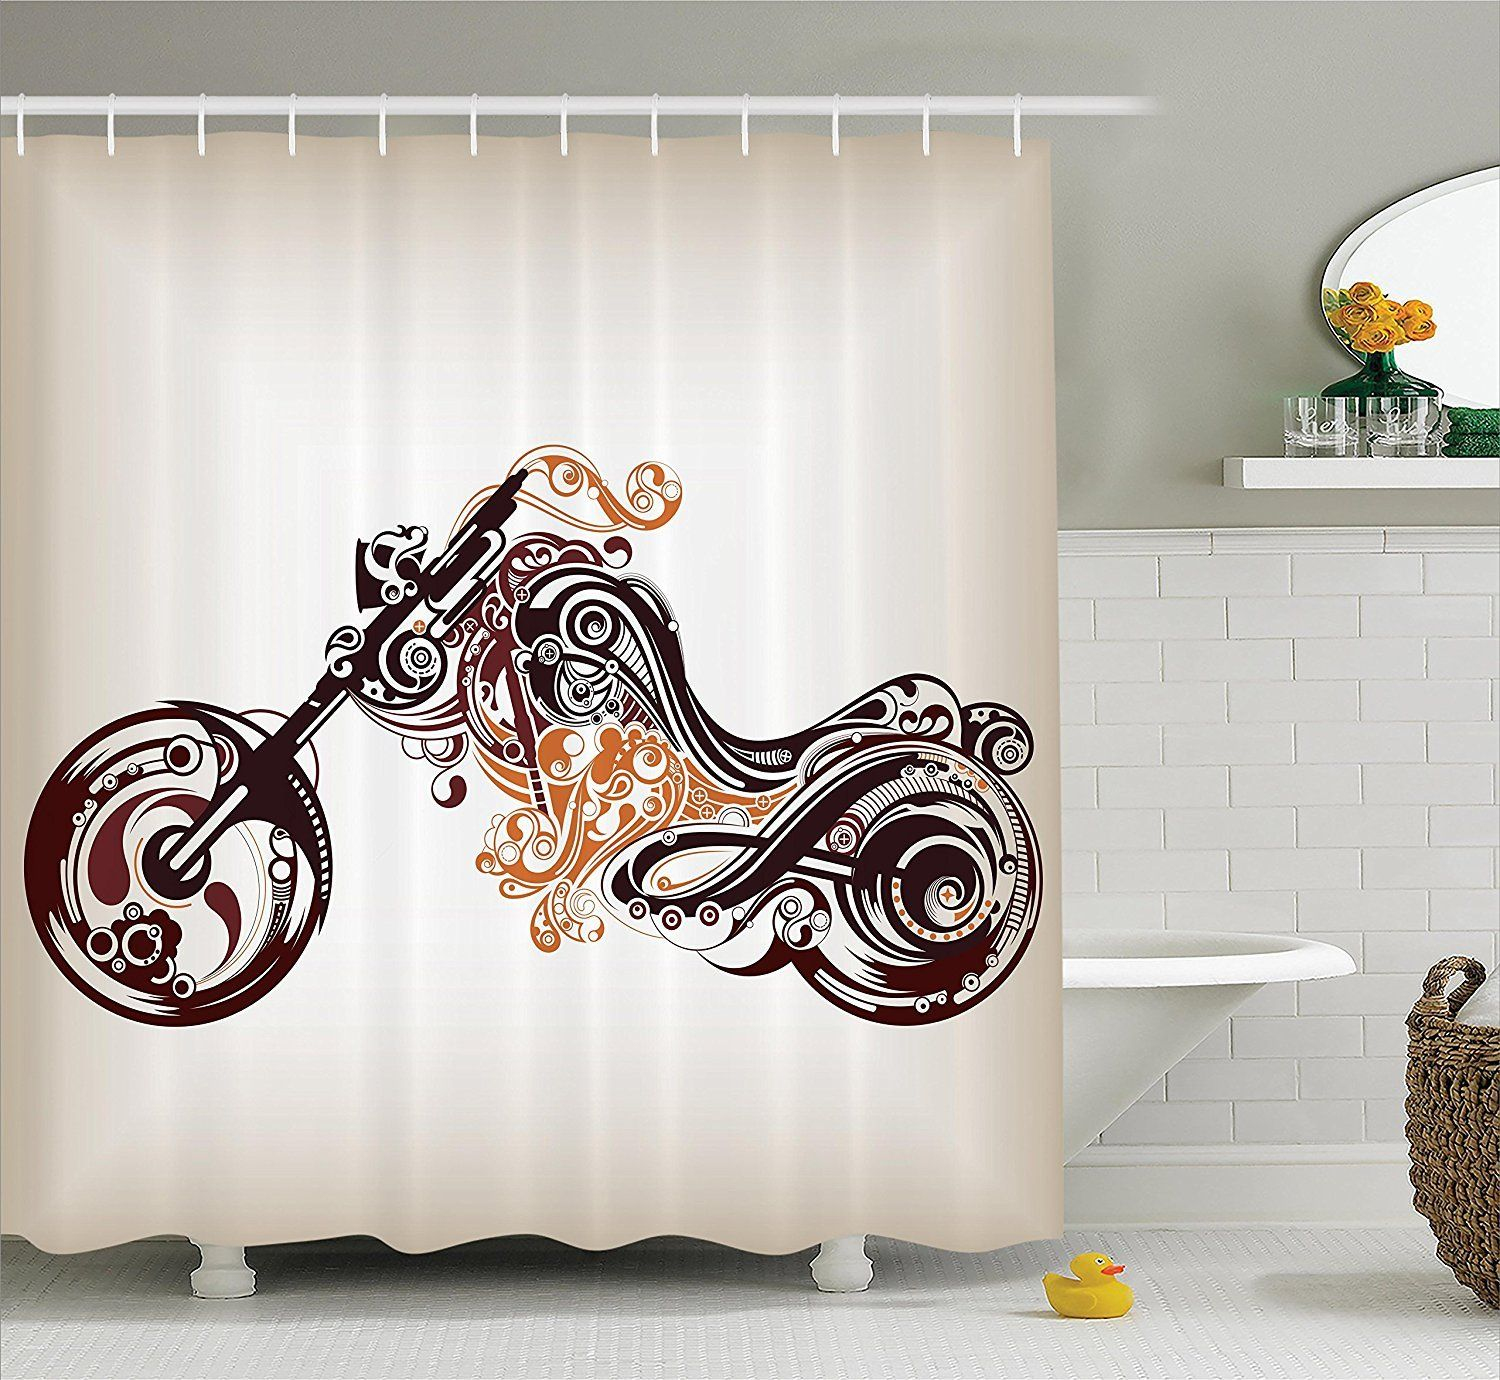 Motorcycle Chopper Shower Curtain Shower Curtain Decor Bathroom Accessories Bathroom Interior Design